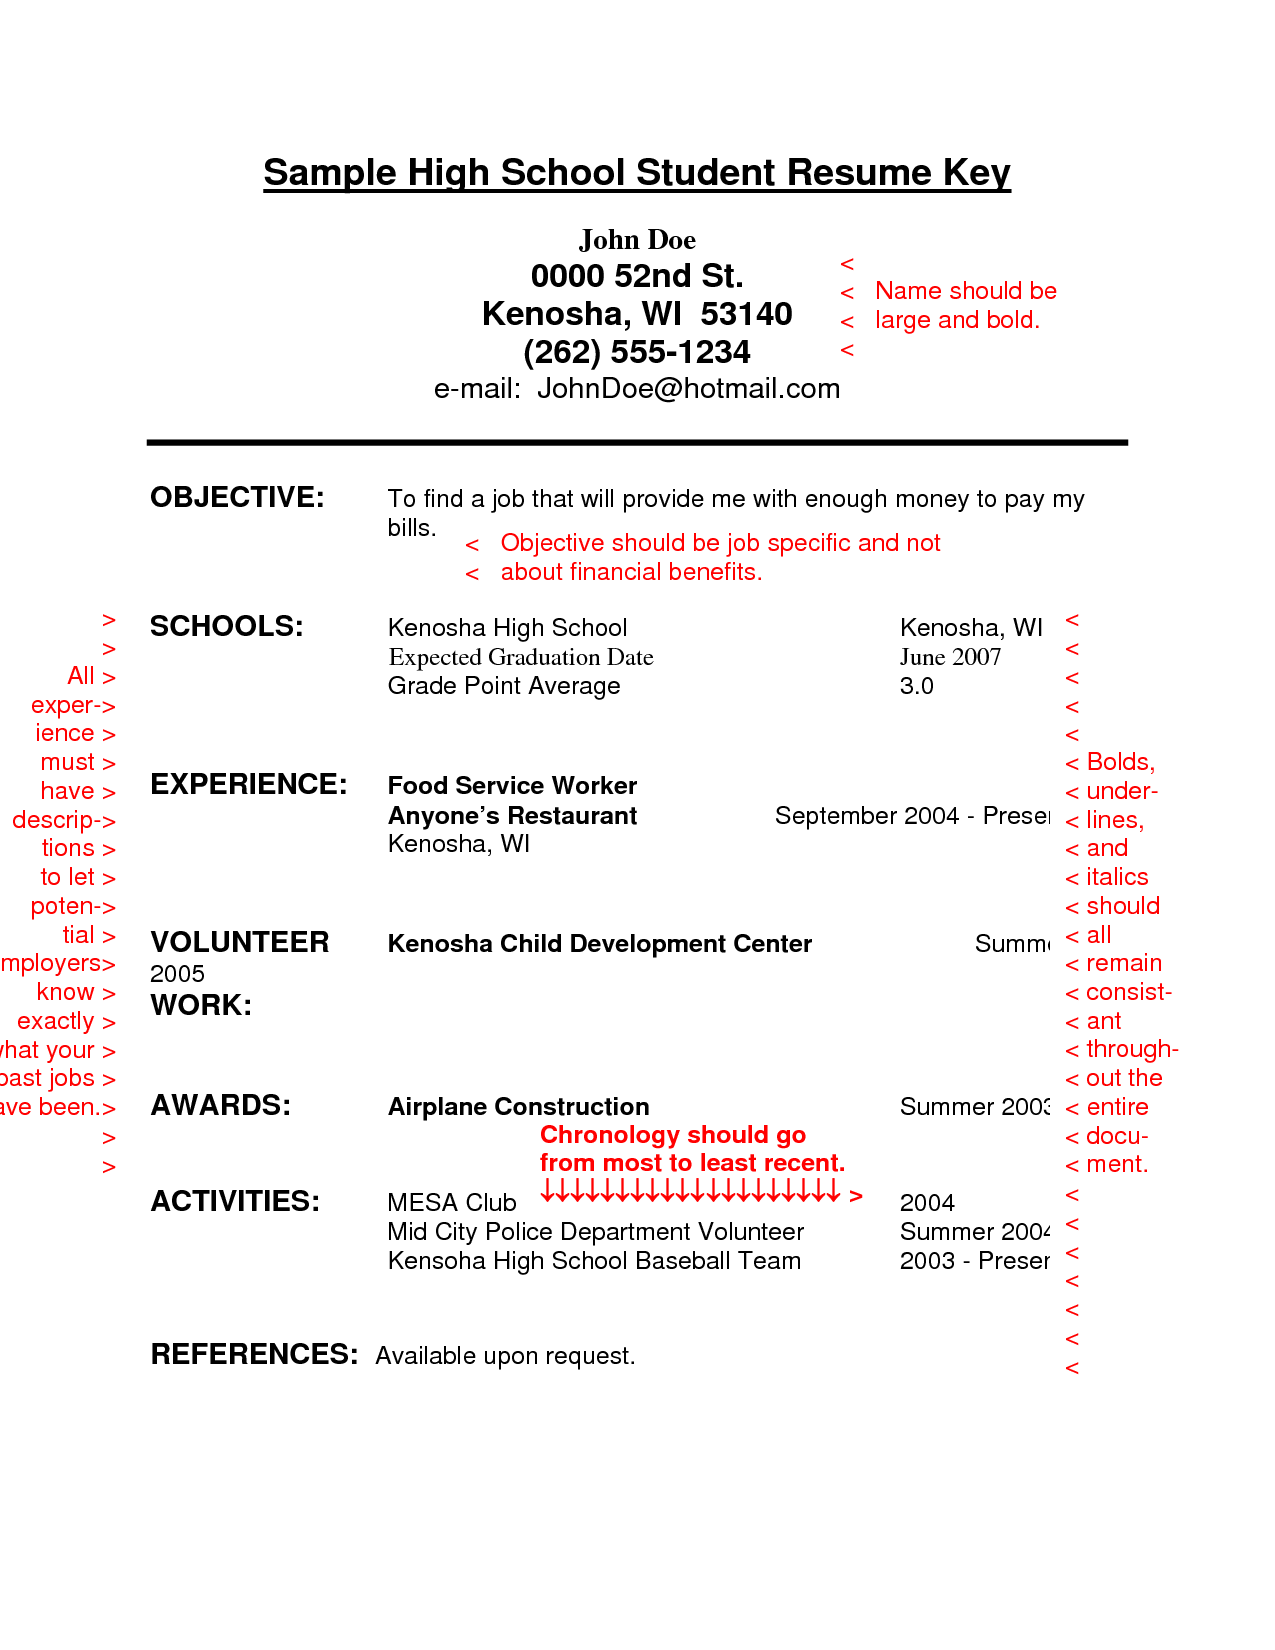 Perfect Resume Sample For High School Students With No Experience   Http://www. Intended Resumes For High Schoolers